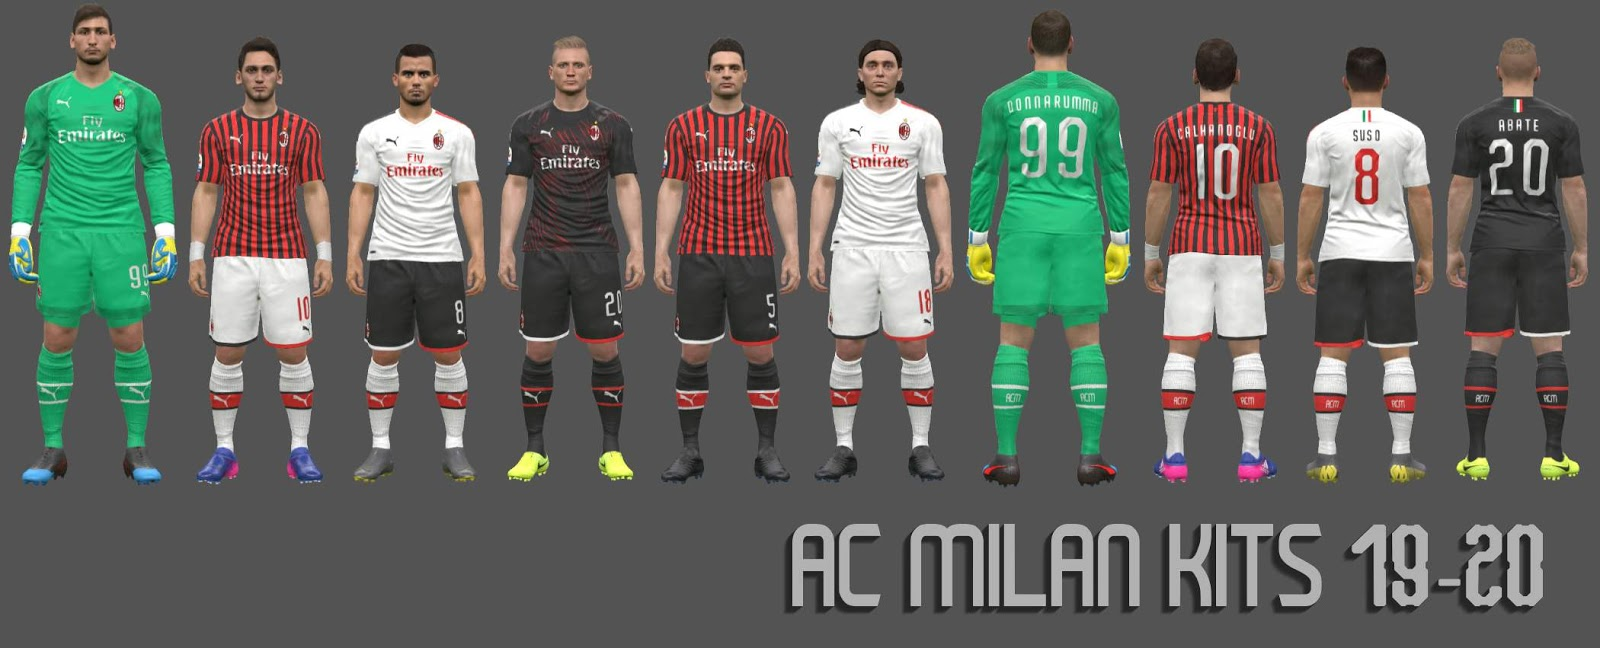 AC Milan Kits 19/20 by ARH For PES 17